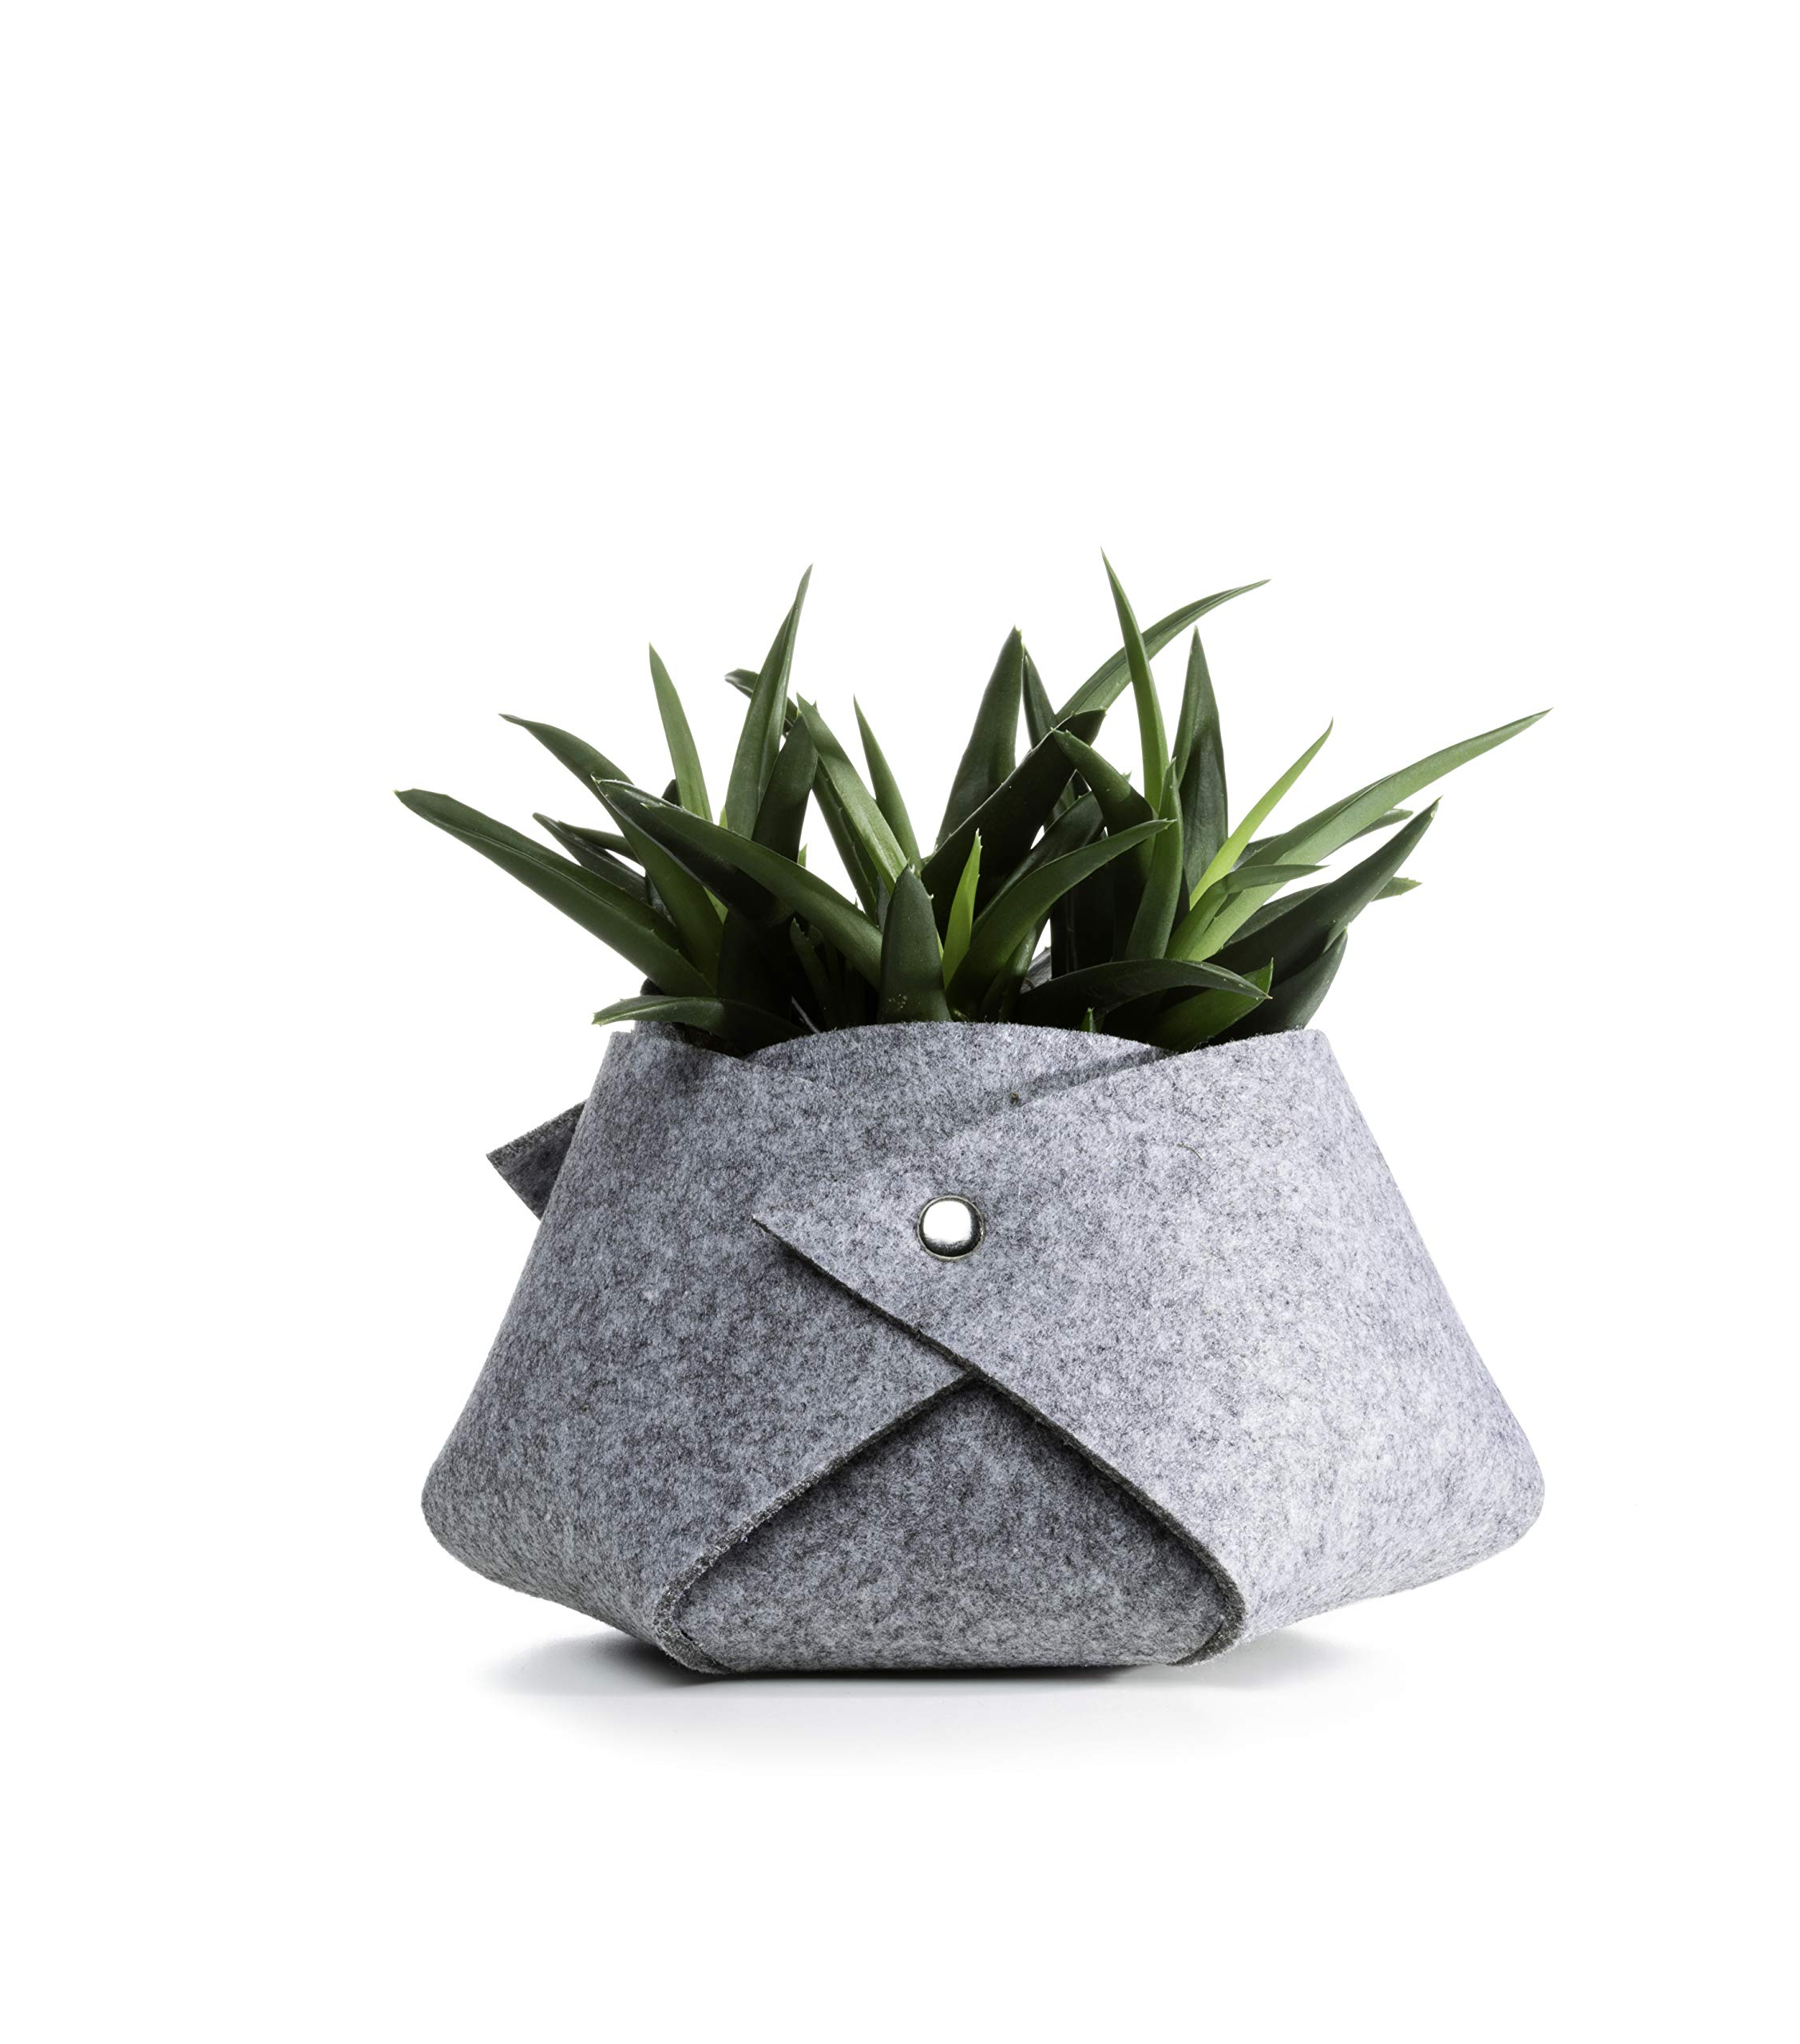 Live Succulents in Grey Fleece Container, From Hallmark Flowers